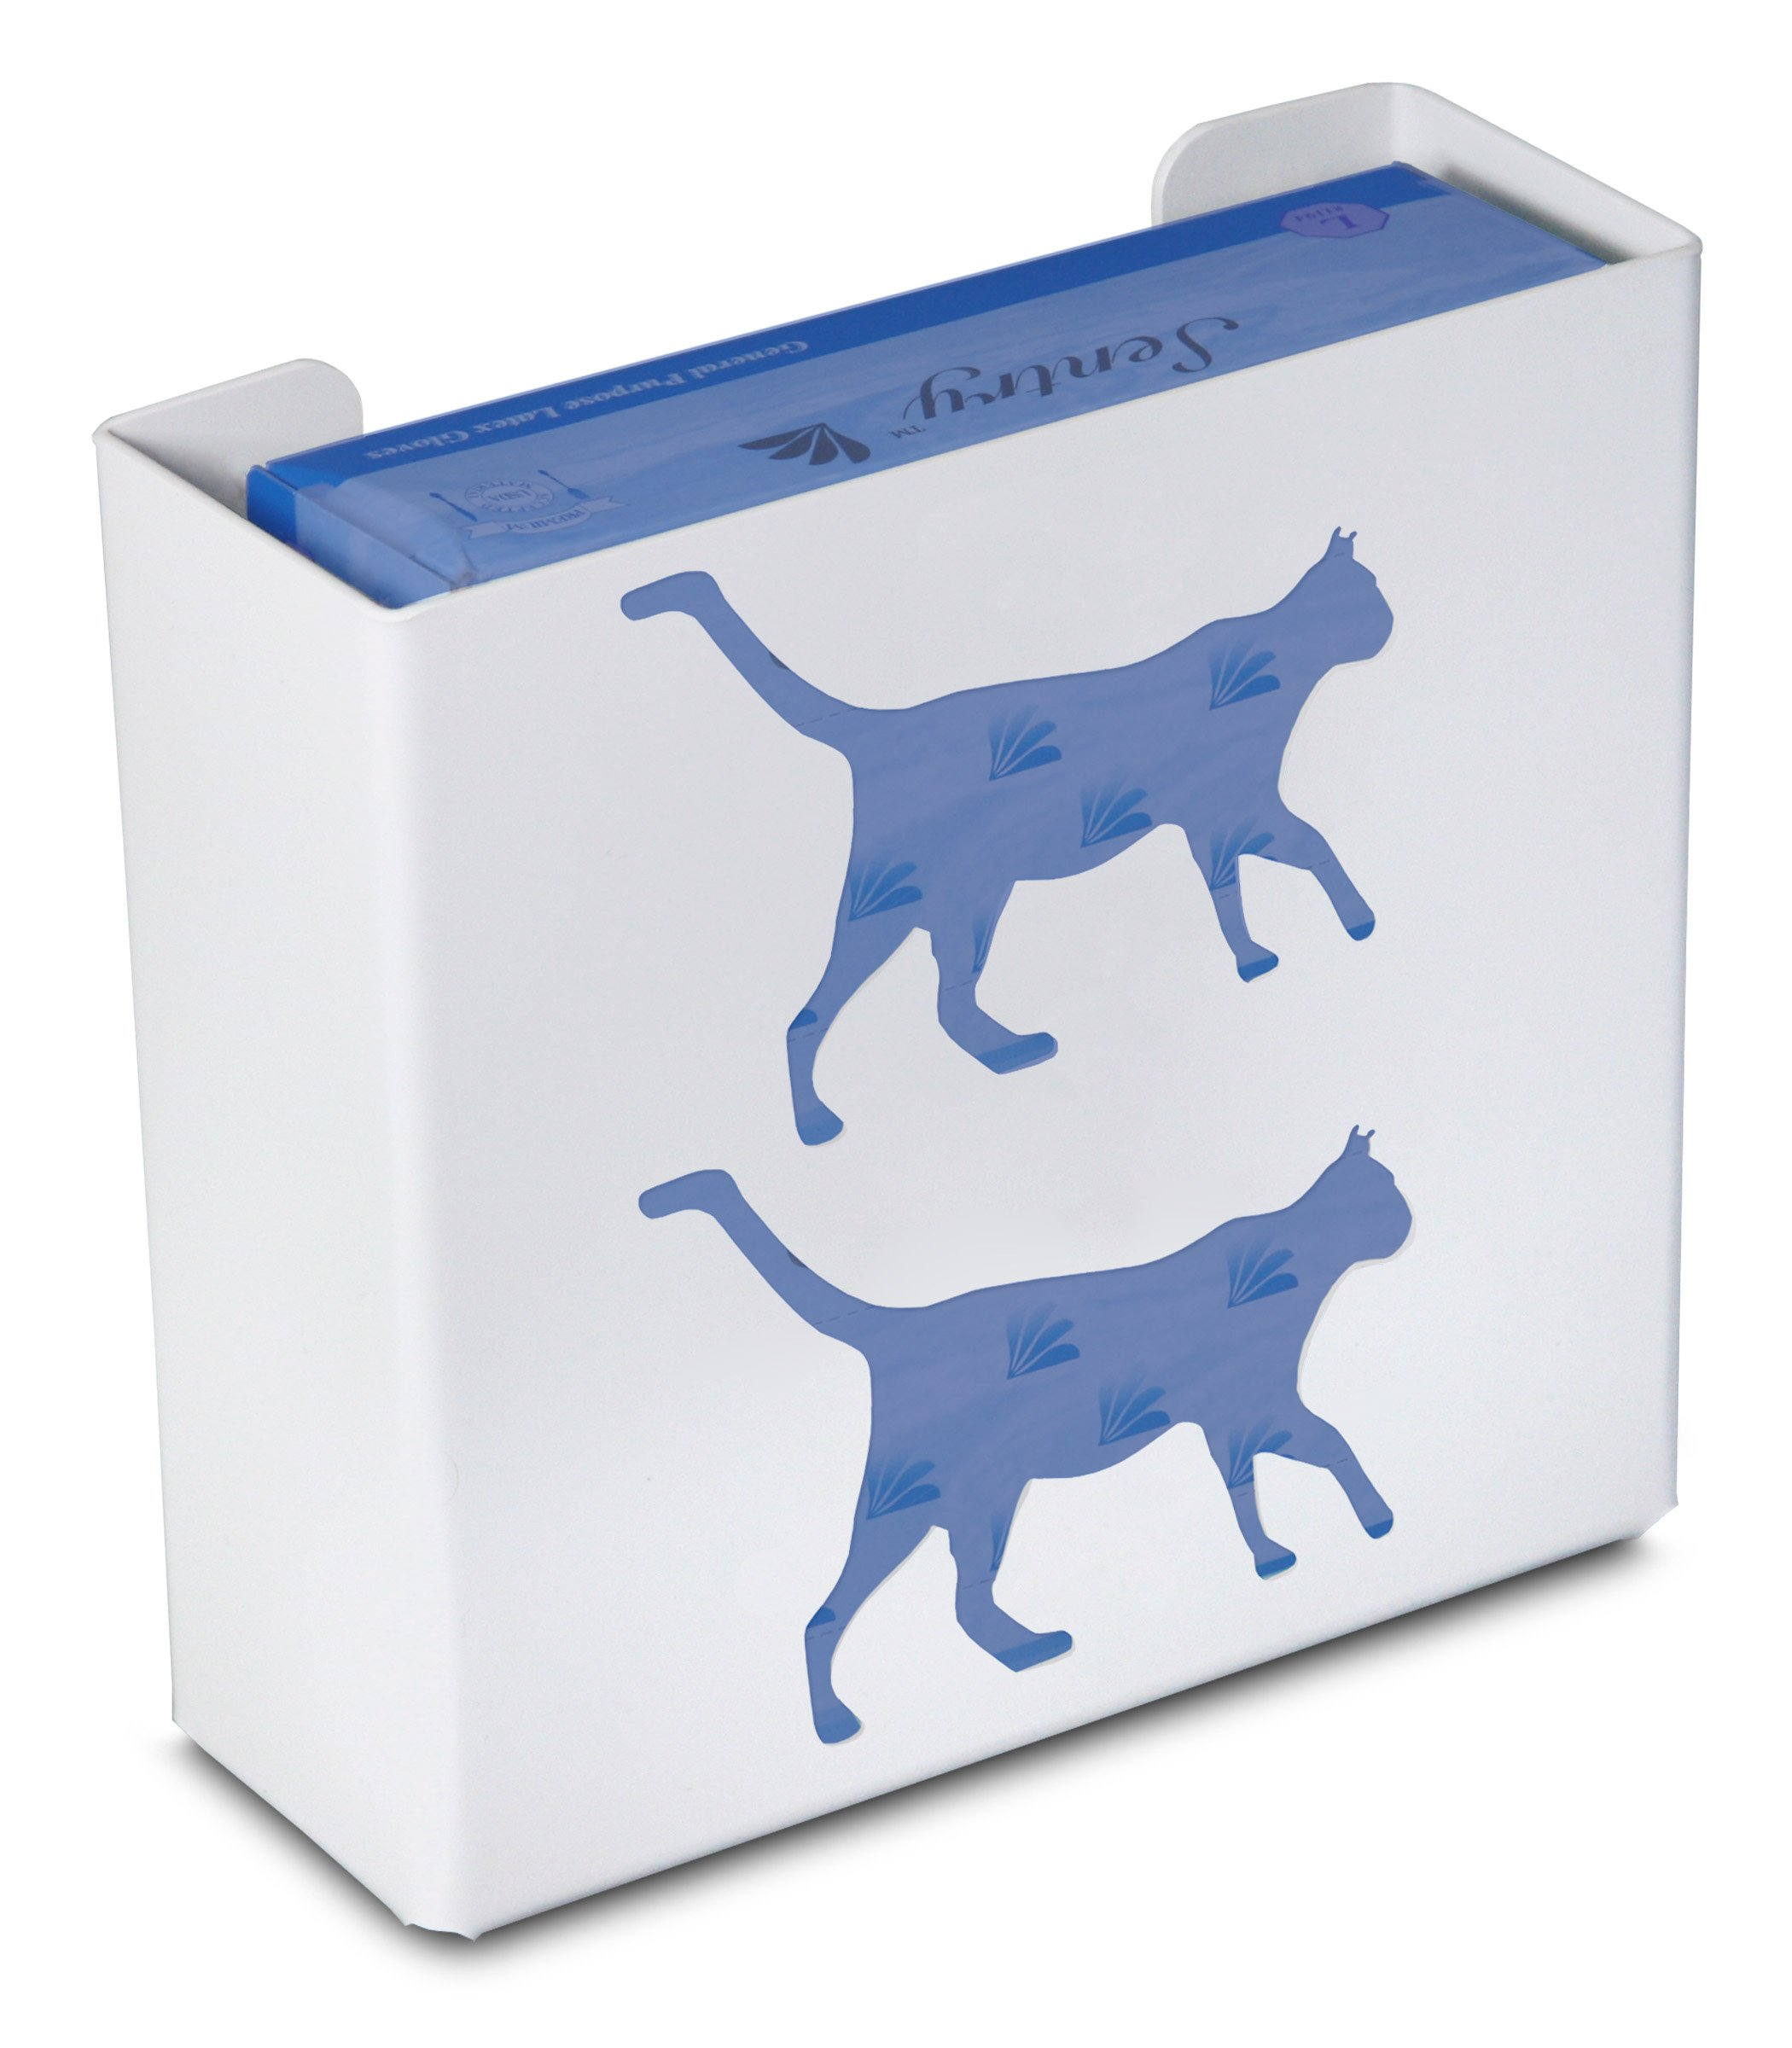 TrippNT 50852 Priced Right Double Glove Box Holder with Cat, 11'' Width x 10'' Height x 4'' Depth